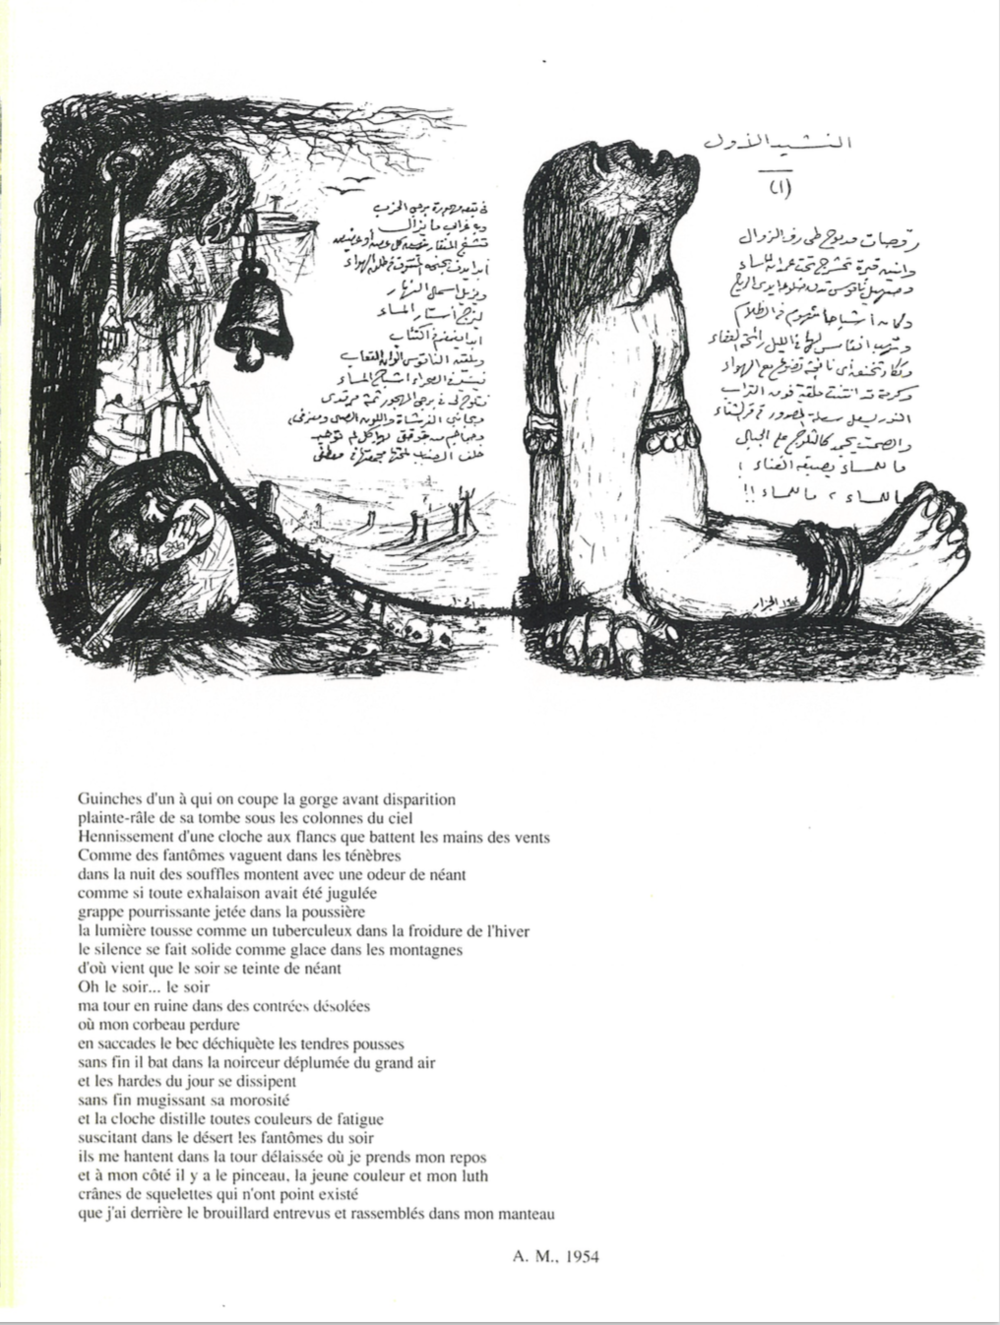 Morsi poetry & Gazzar drawings